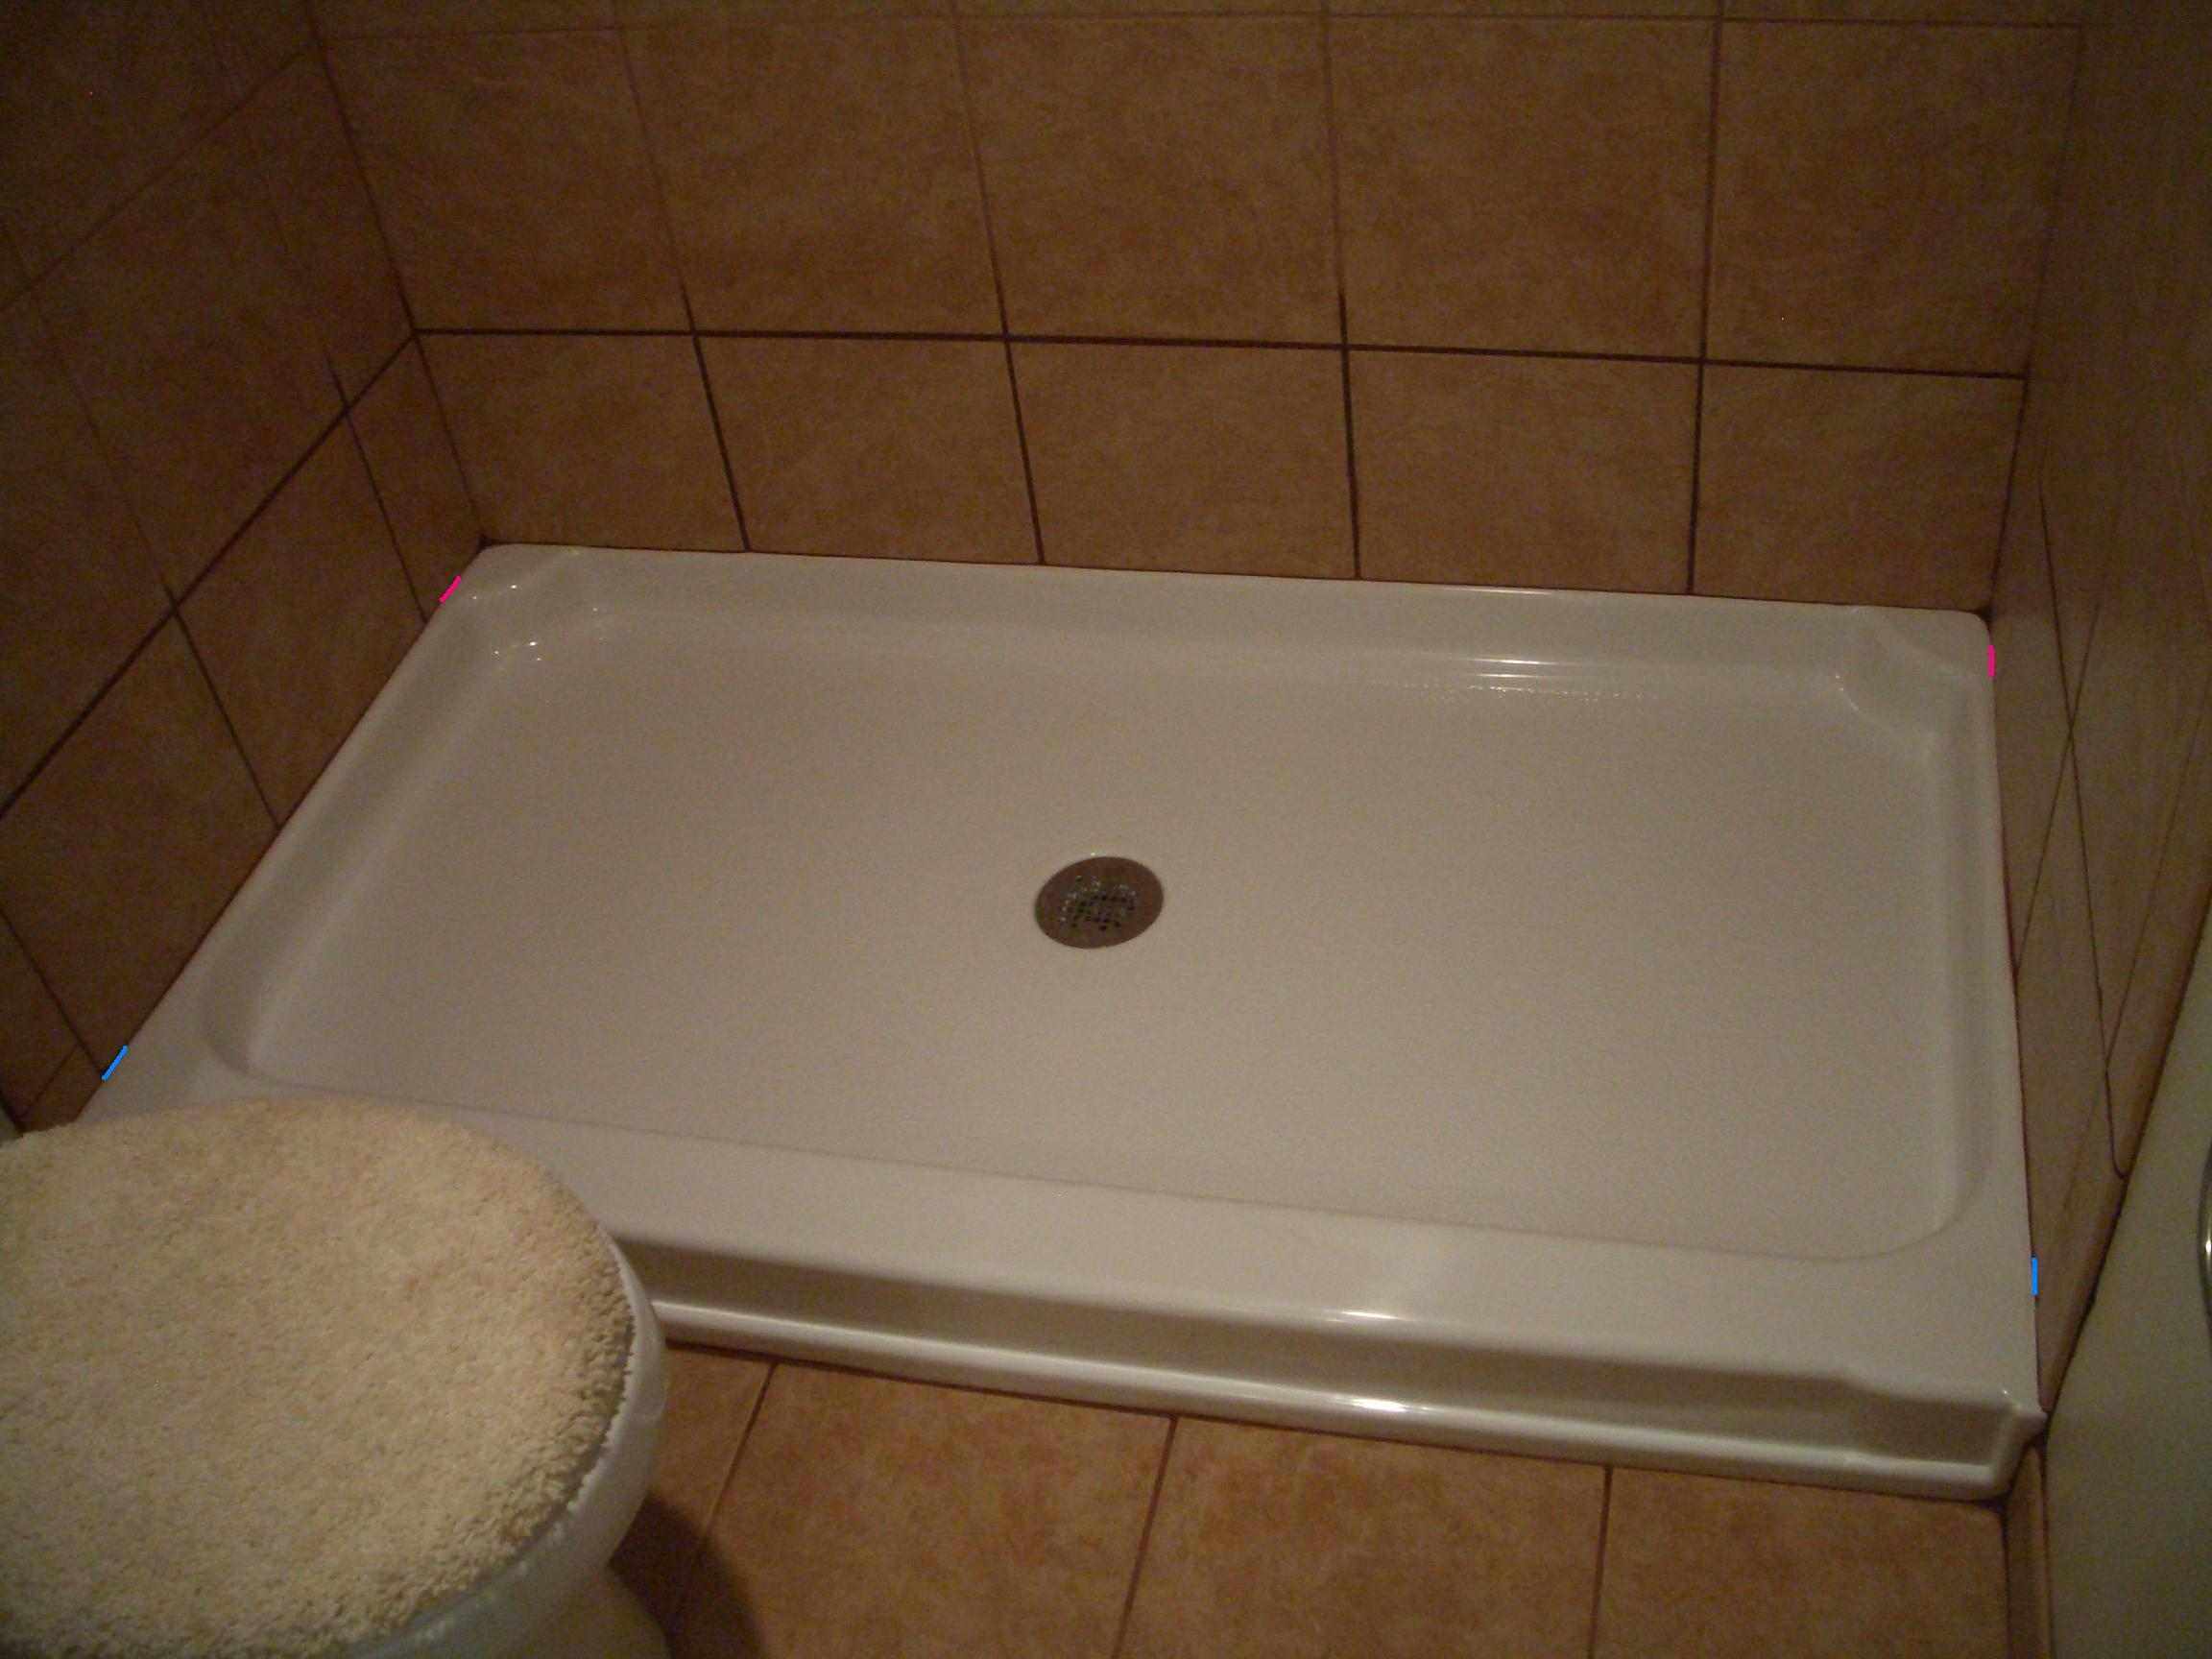 Location of weep holes in tile installations weep hole location in for a shower basin dailygadgetfo Choice Image